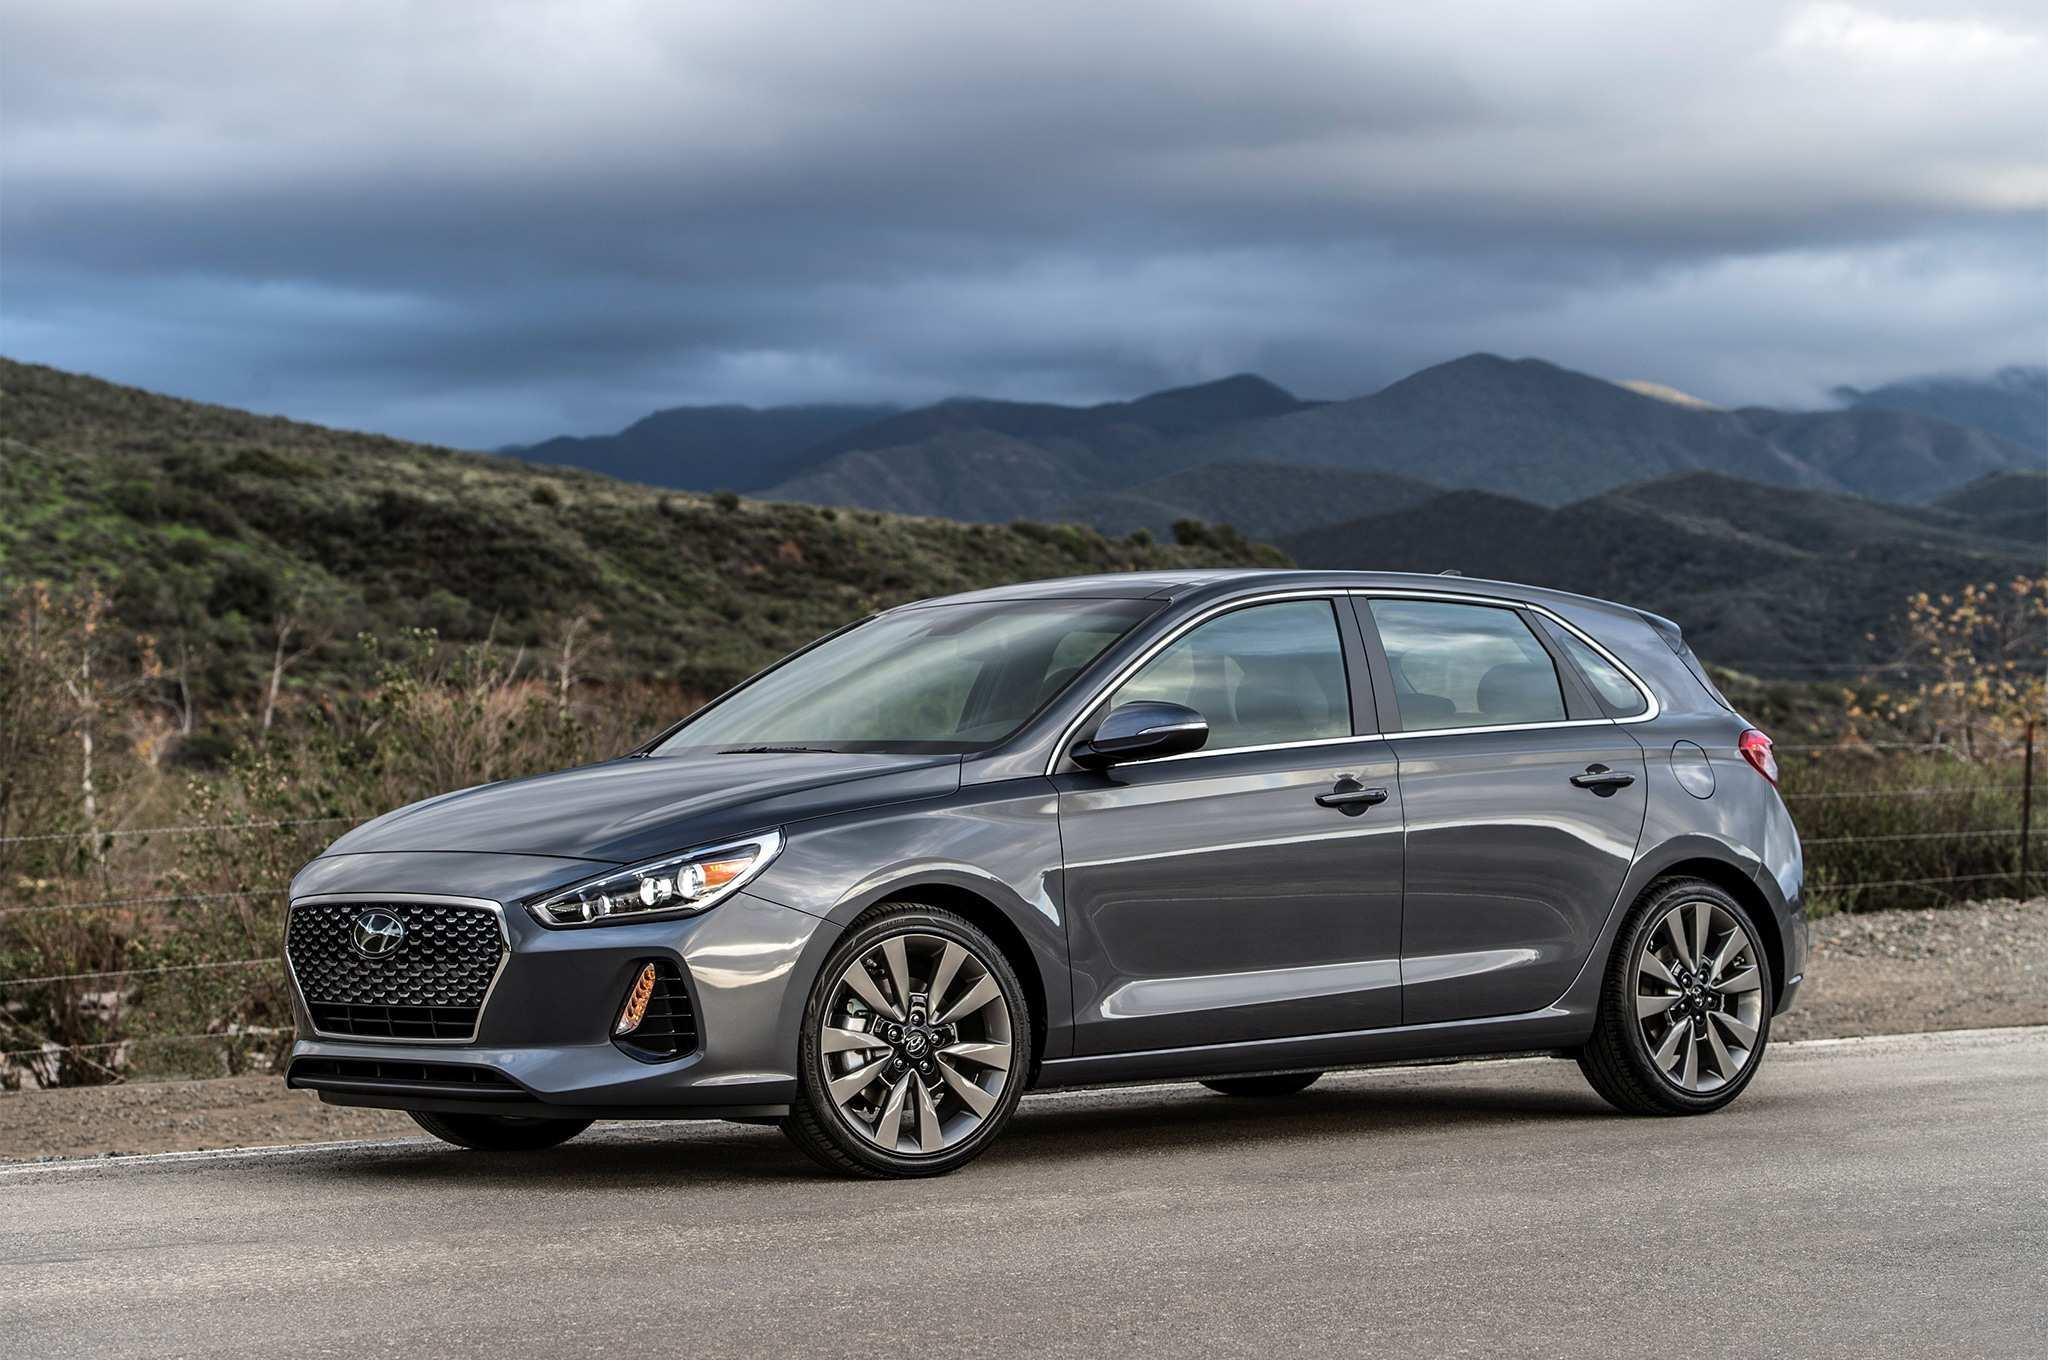 28 New Hyundai Elantra 2020 Release Date Spy Shoot